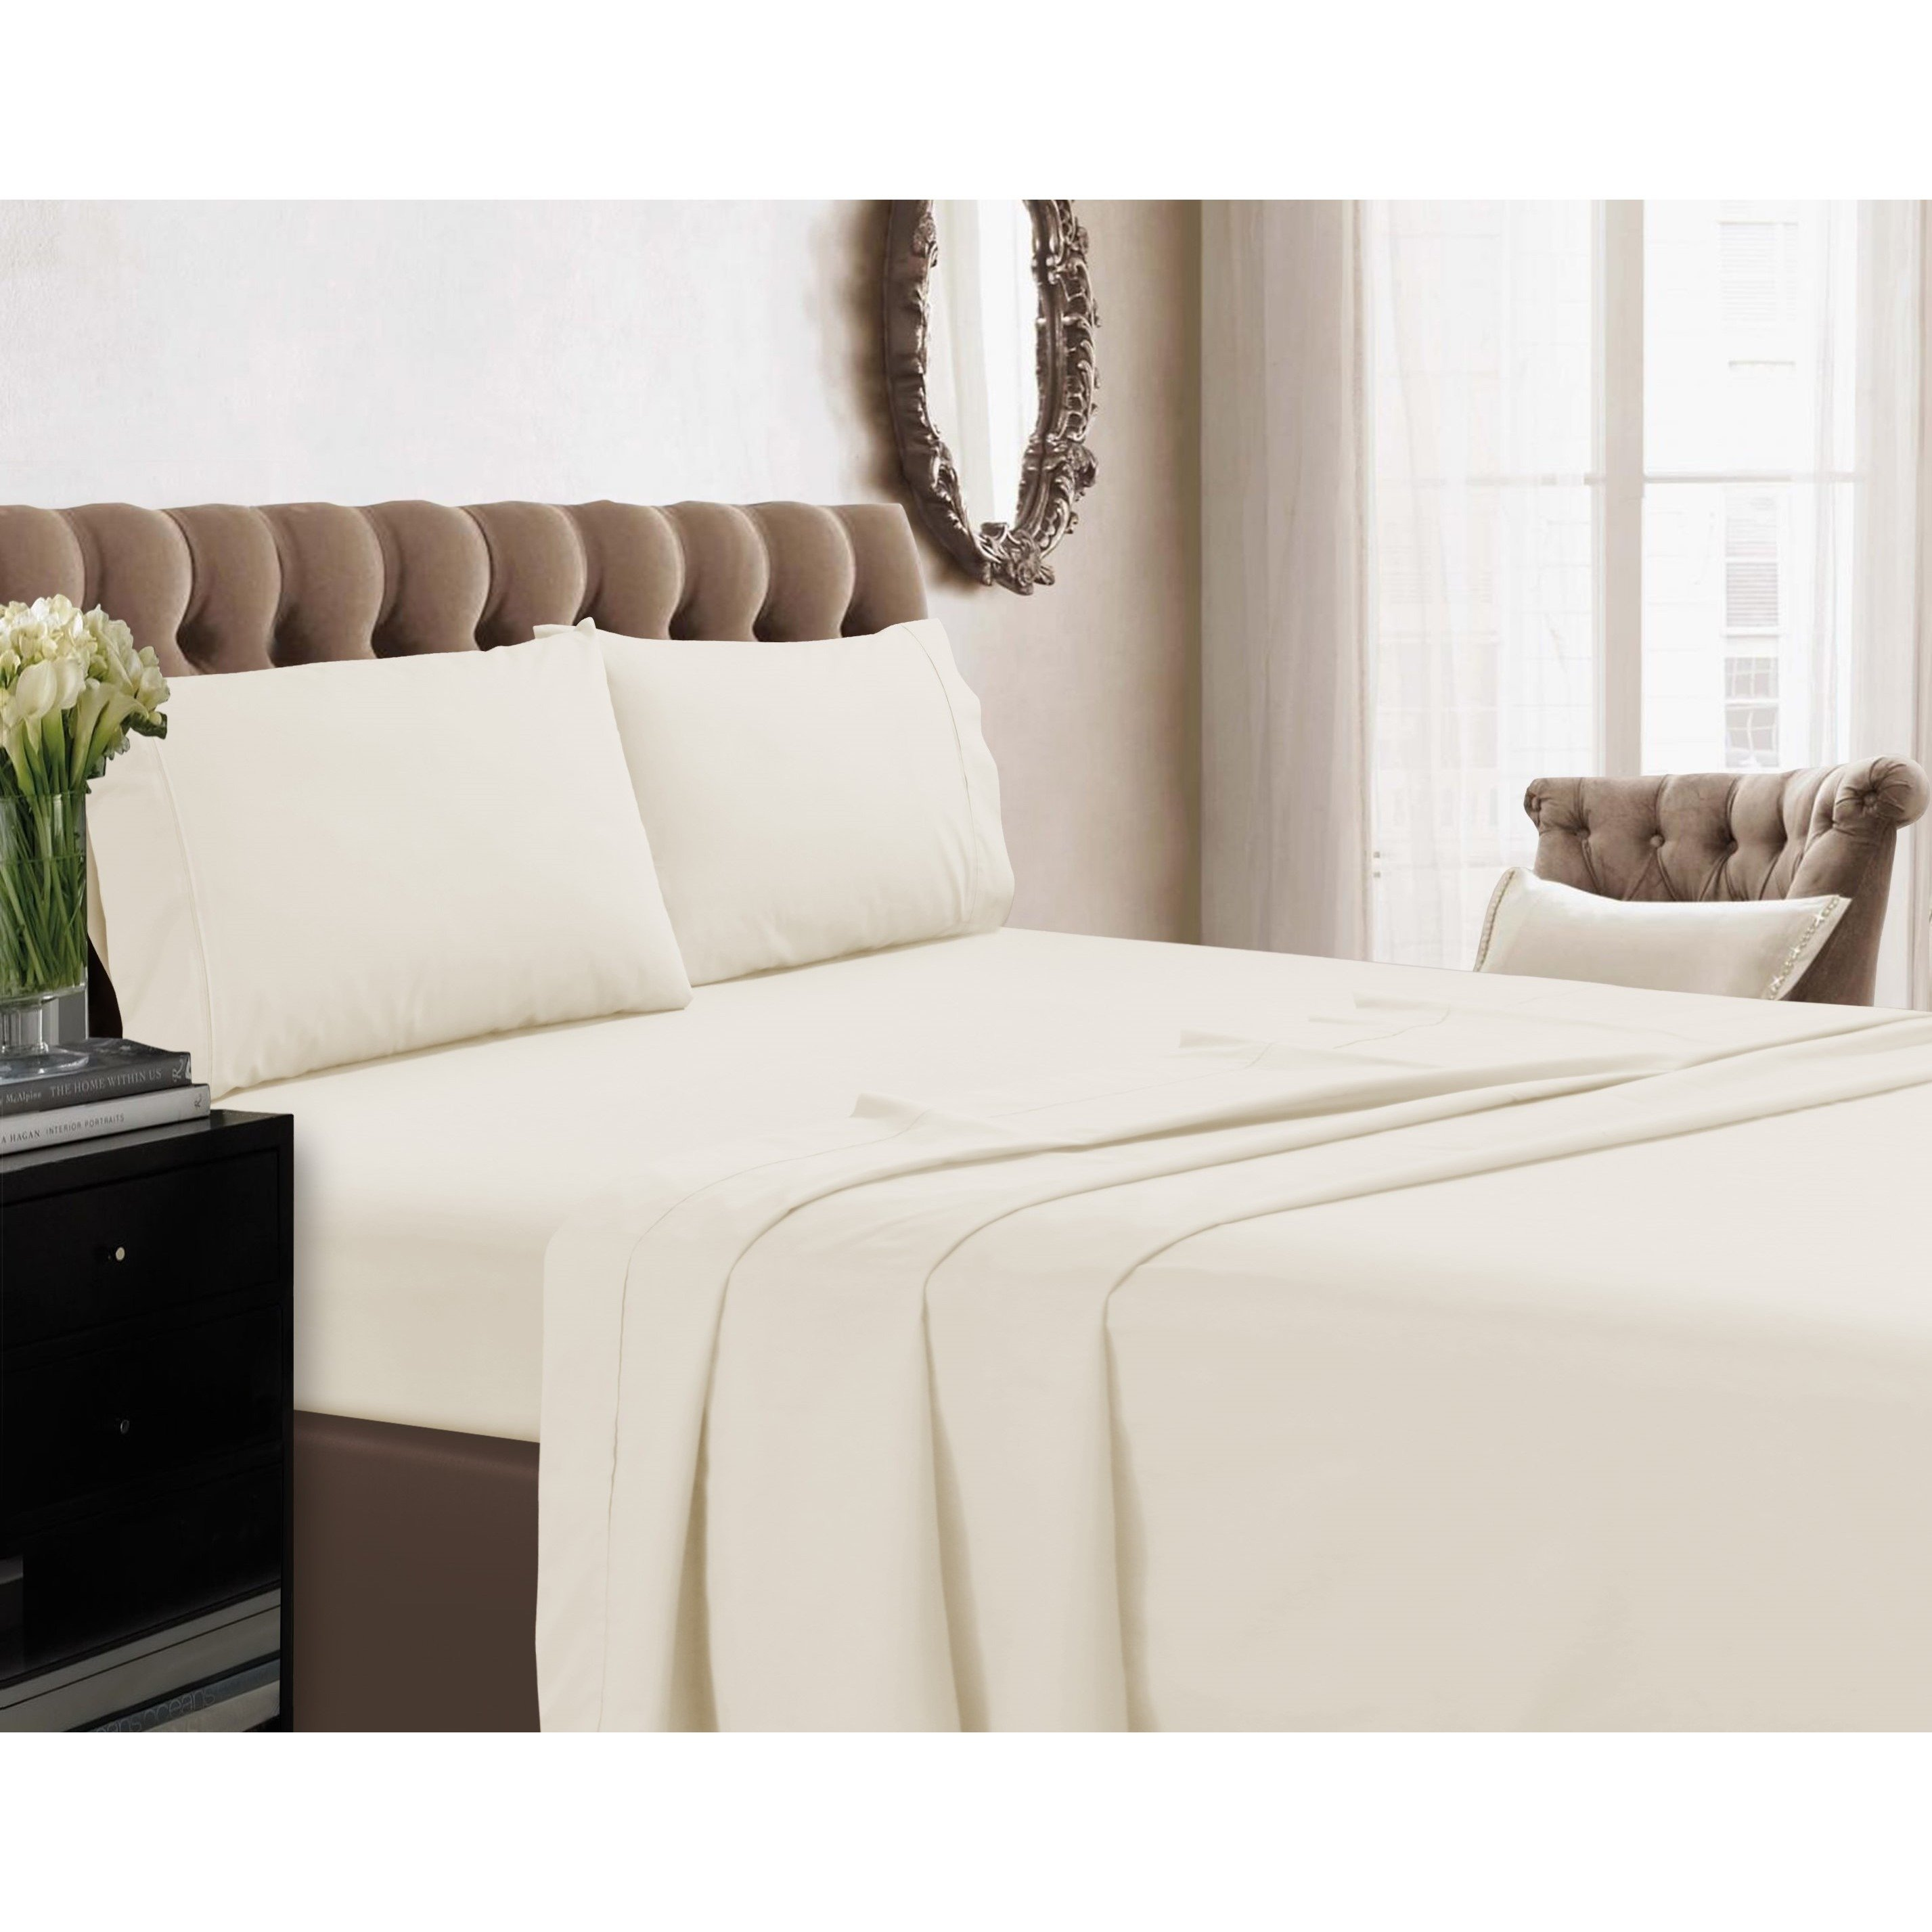 Deep Fitted Sheets Queen Size King Bed Set Off White Earthing Grounding With 15